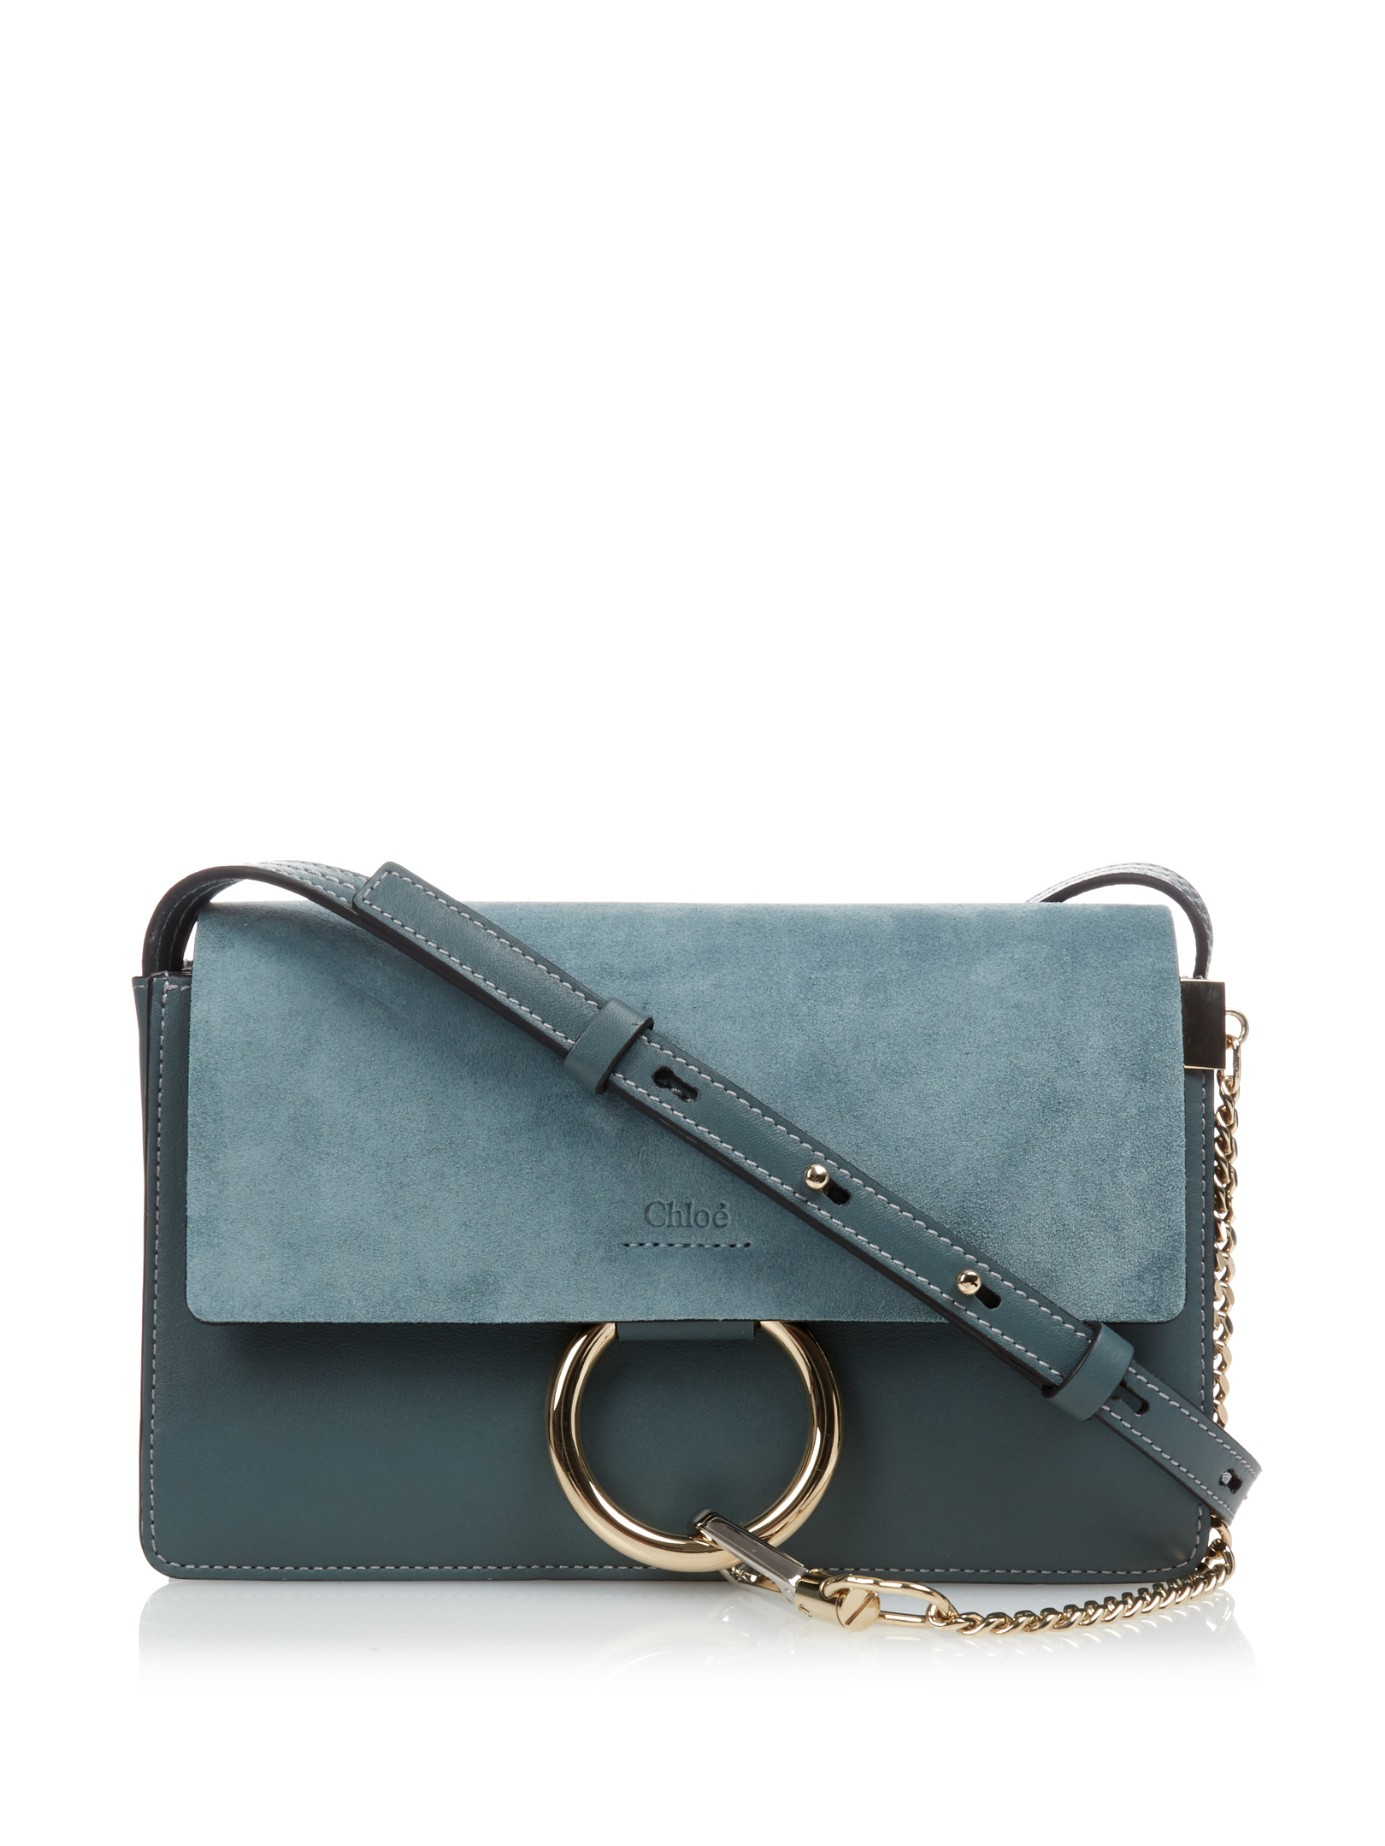 chloe bags - chloe faye leather and suede shoulder bag, chloe marcie bag replica